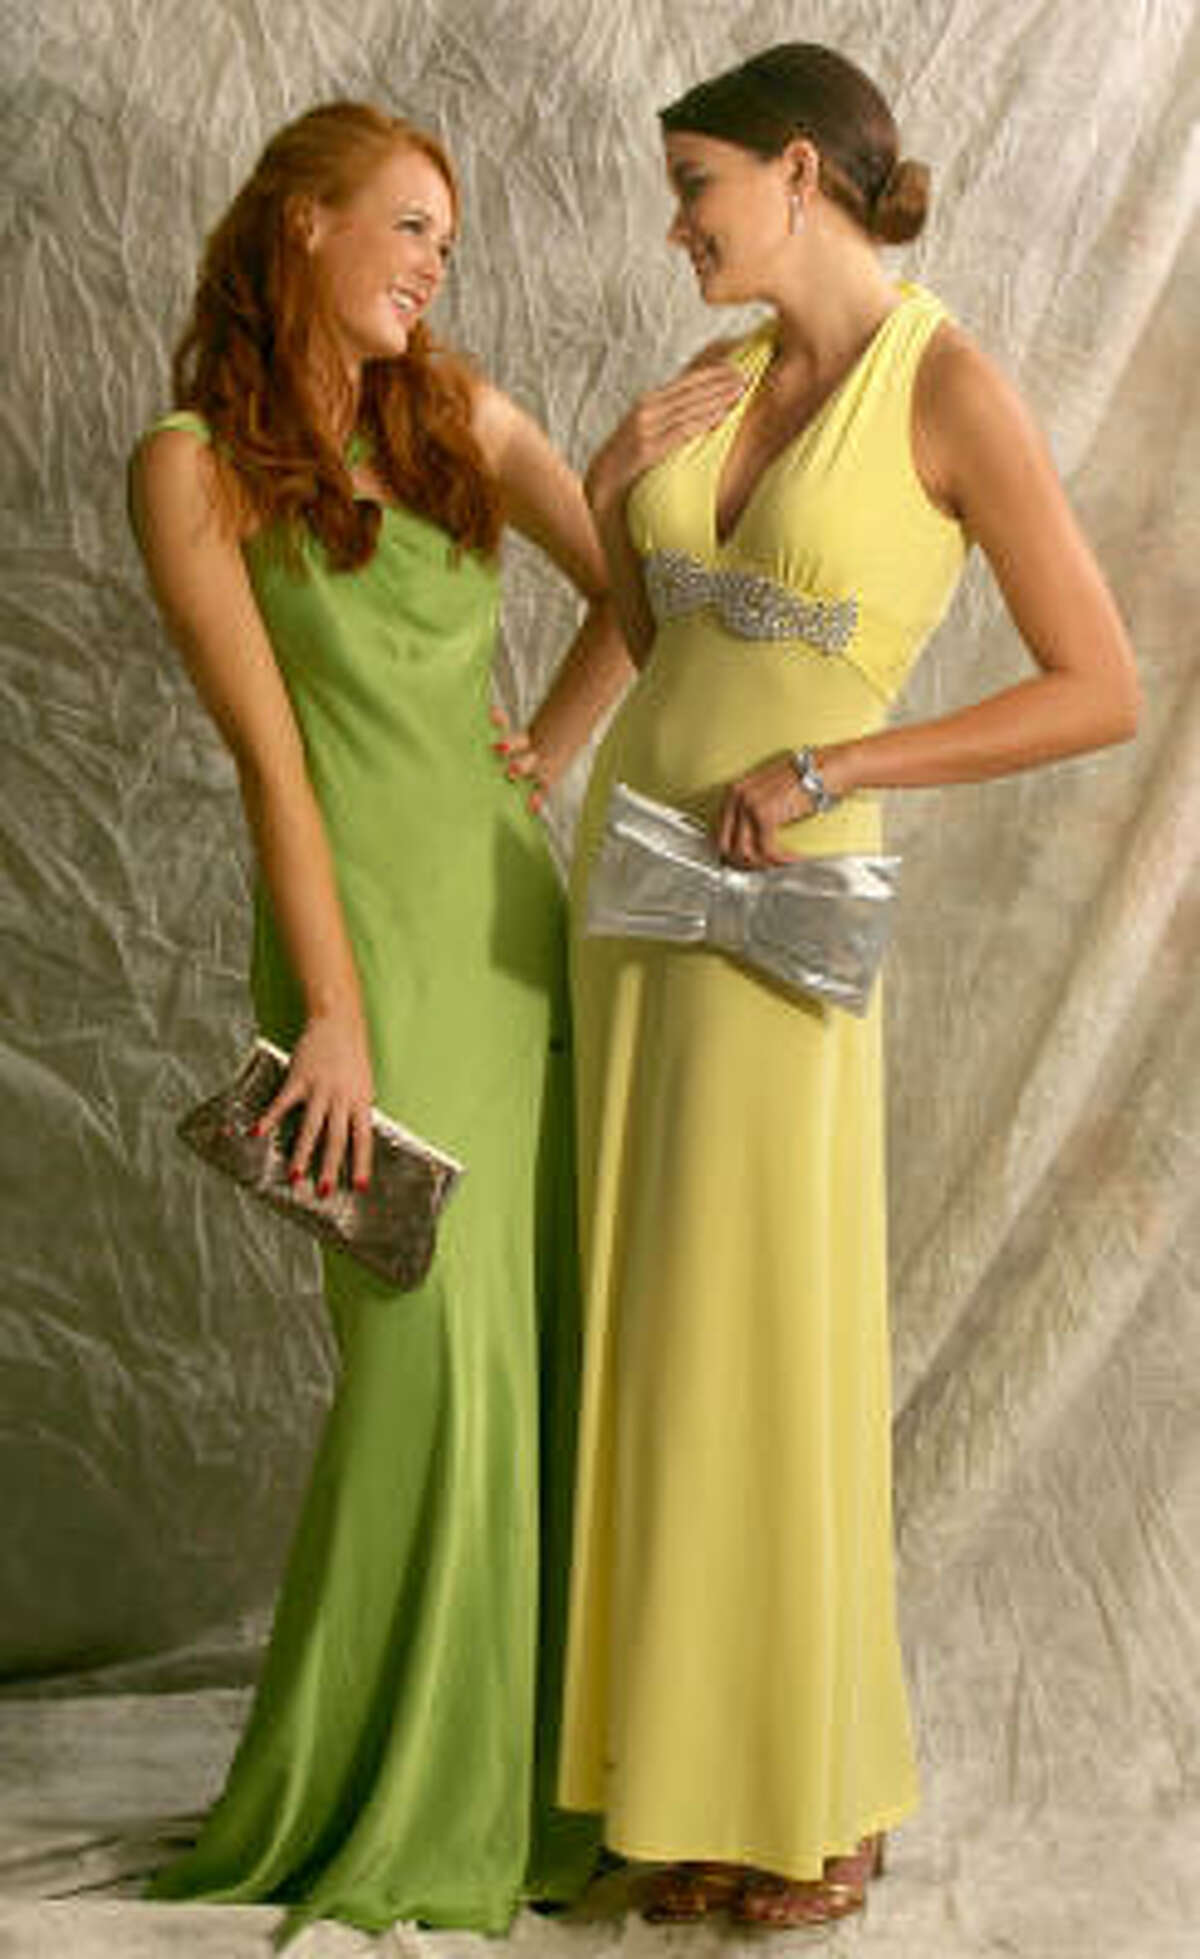 Prom fashion is all about choice this year, whether it is strapless, halter or one-shoulder style, long, short or in-between, black, white or bright.